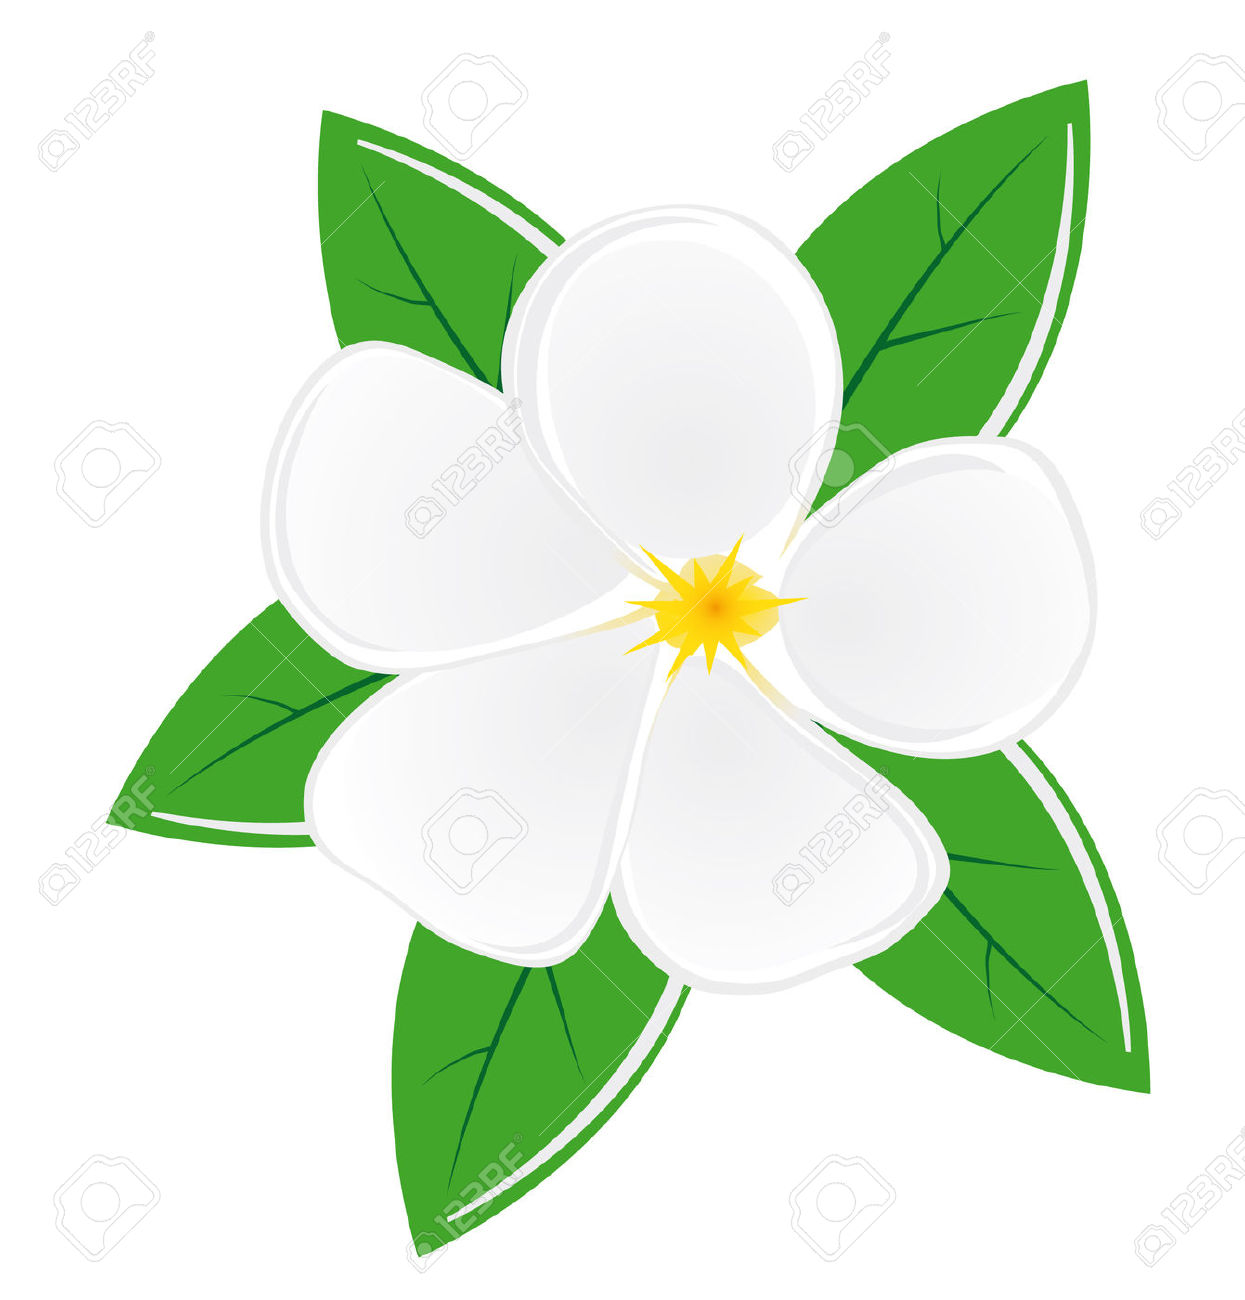 Nature Clipart Green Magnolia Leaves Free.